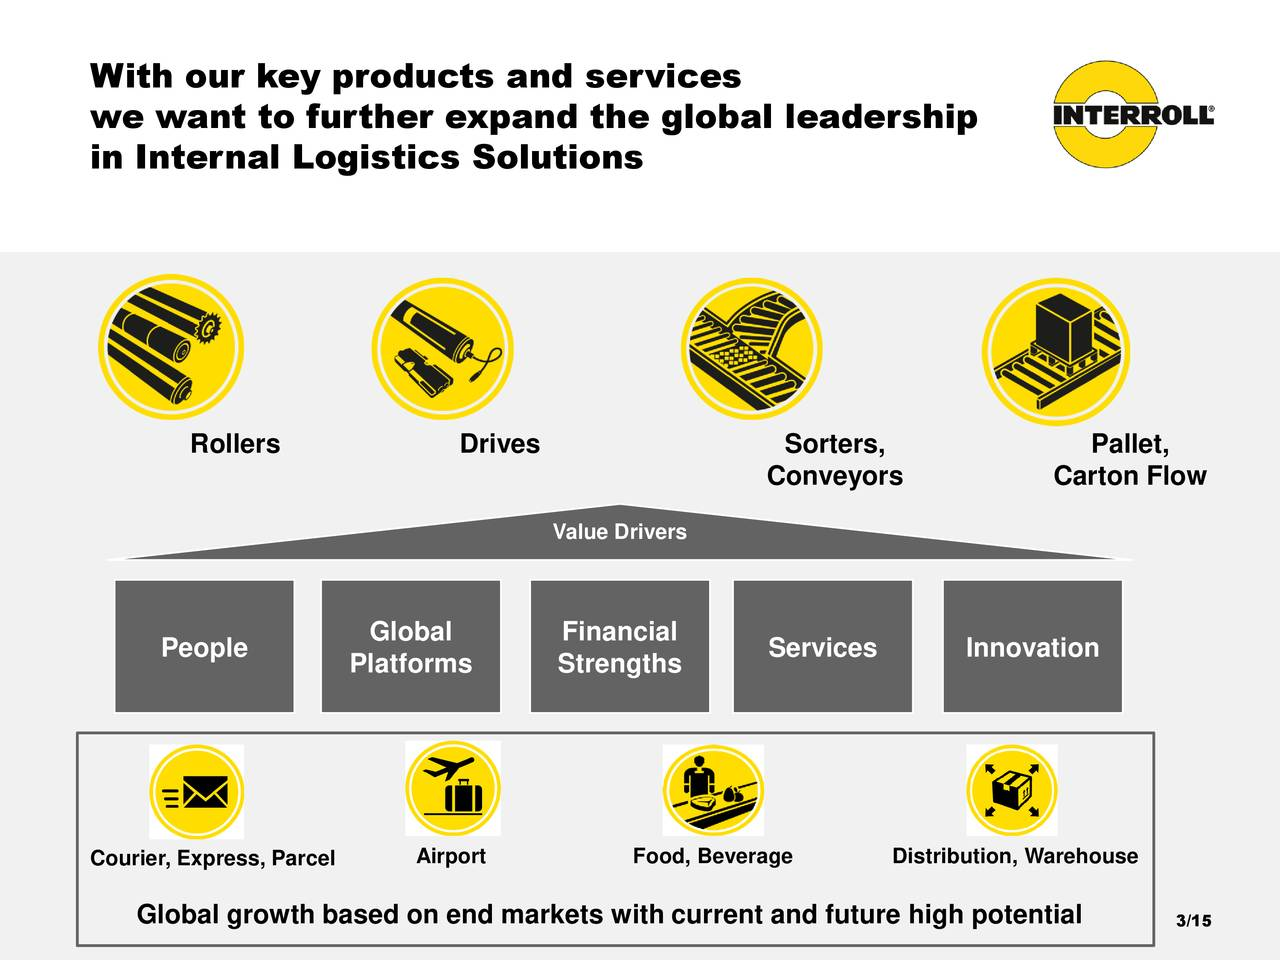 we want to further expand the global leadership in Internal Logistics Solutions Rollers Drives Sorters, Pallet, Conveyors Carton Flow Value Drivers People Global Financial Services Innovation Platforms Strengths Courier, Express, Parcel Airport Food, Beverage Distribution, Warehouse Global growth based on end markets with current and future high potential 3/15